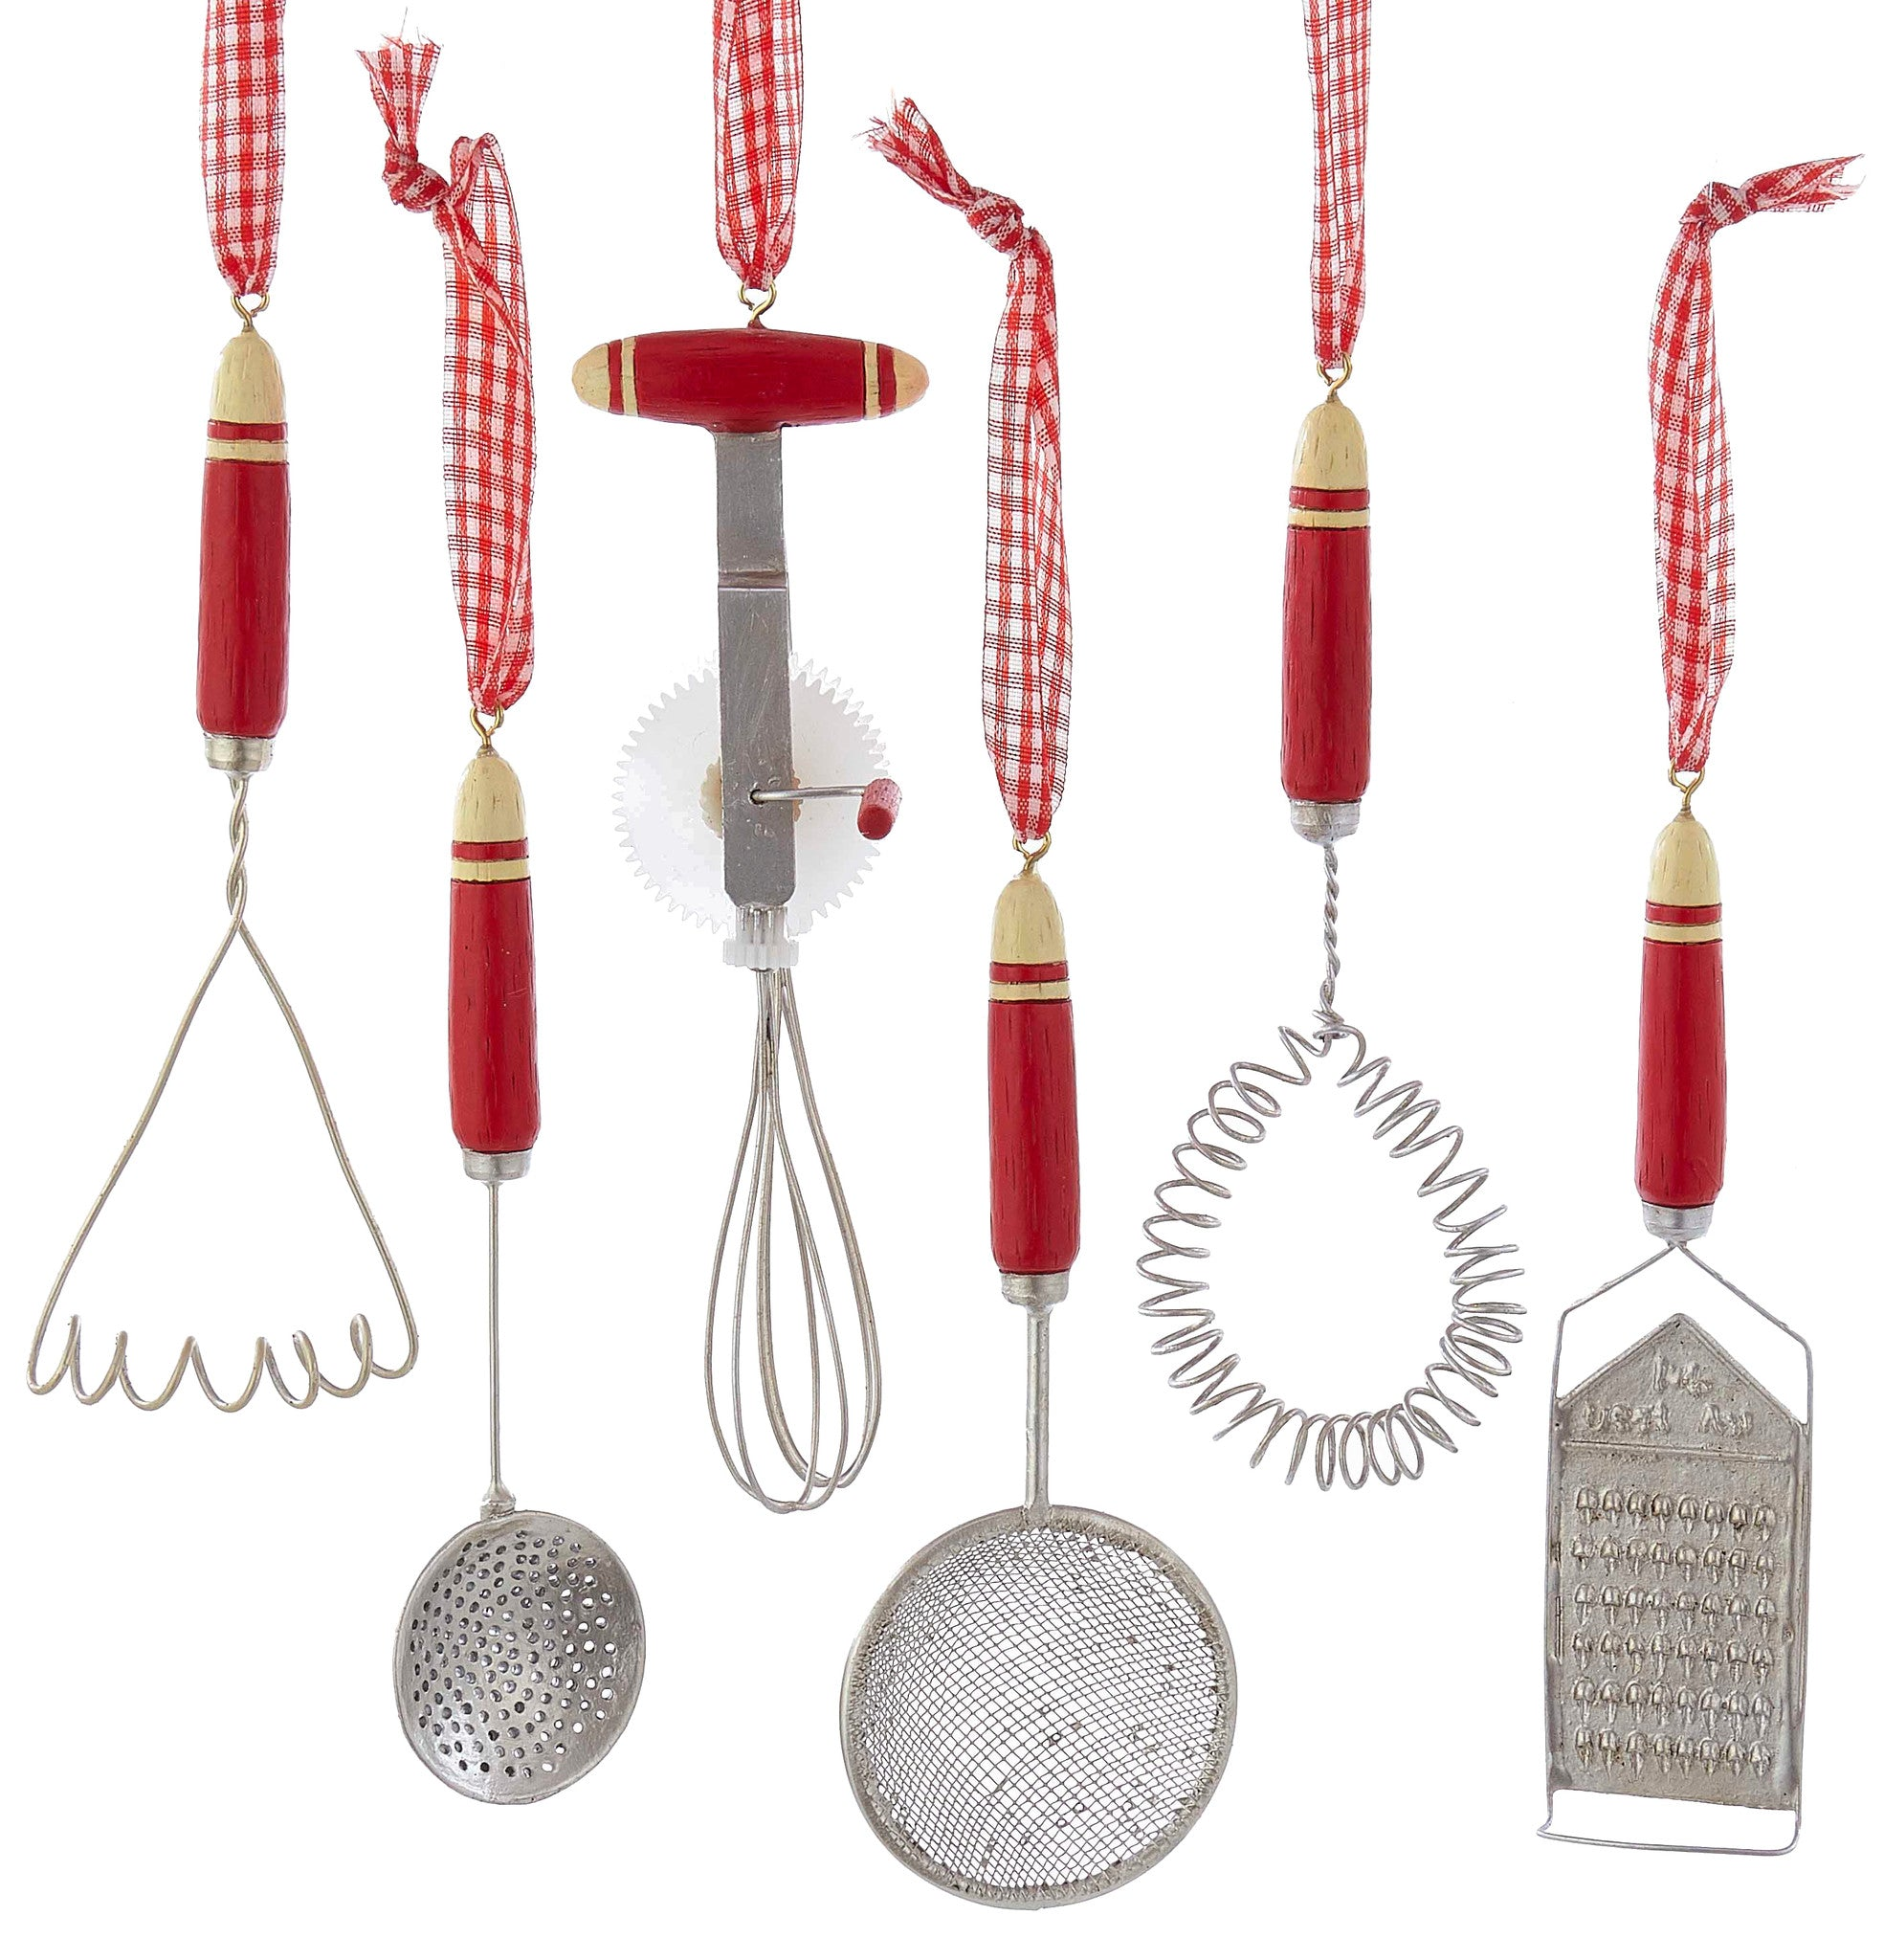 Grandma S Old Fashioned Kitchen Utensil Ornaments Christmas Tree Theholidaybarn Com